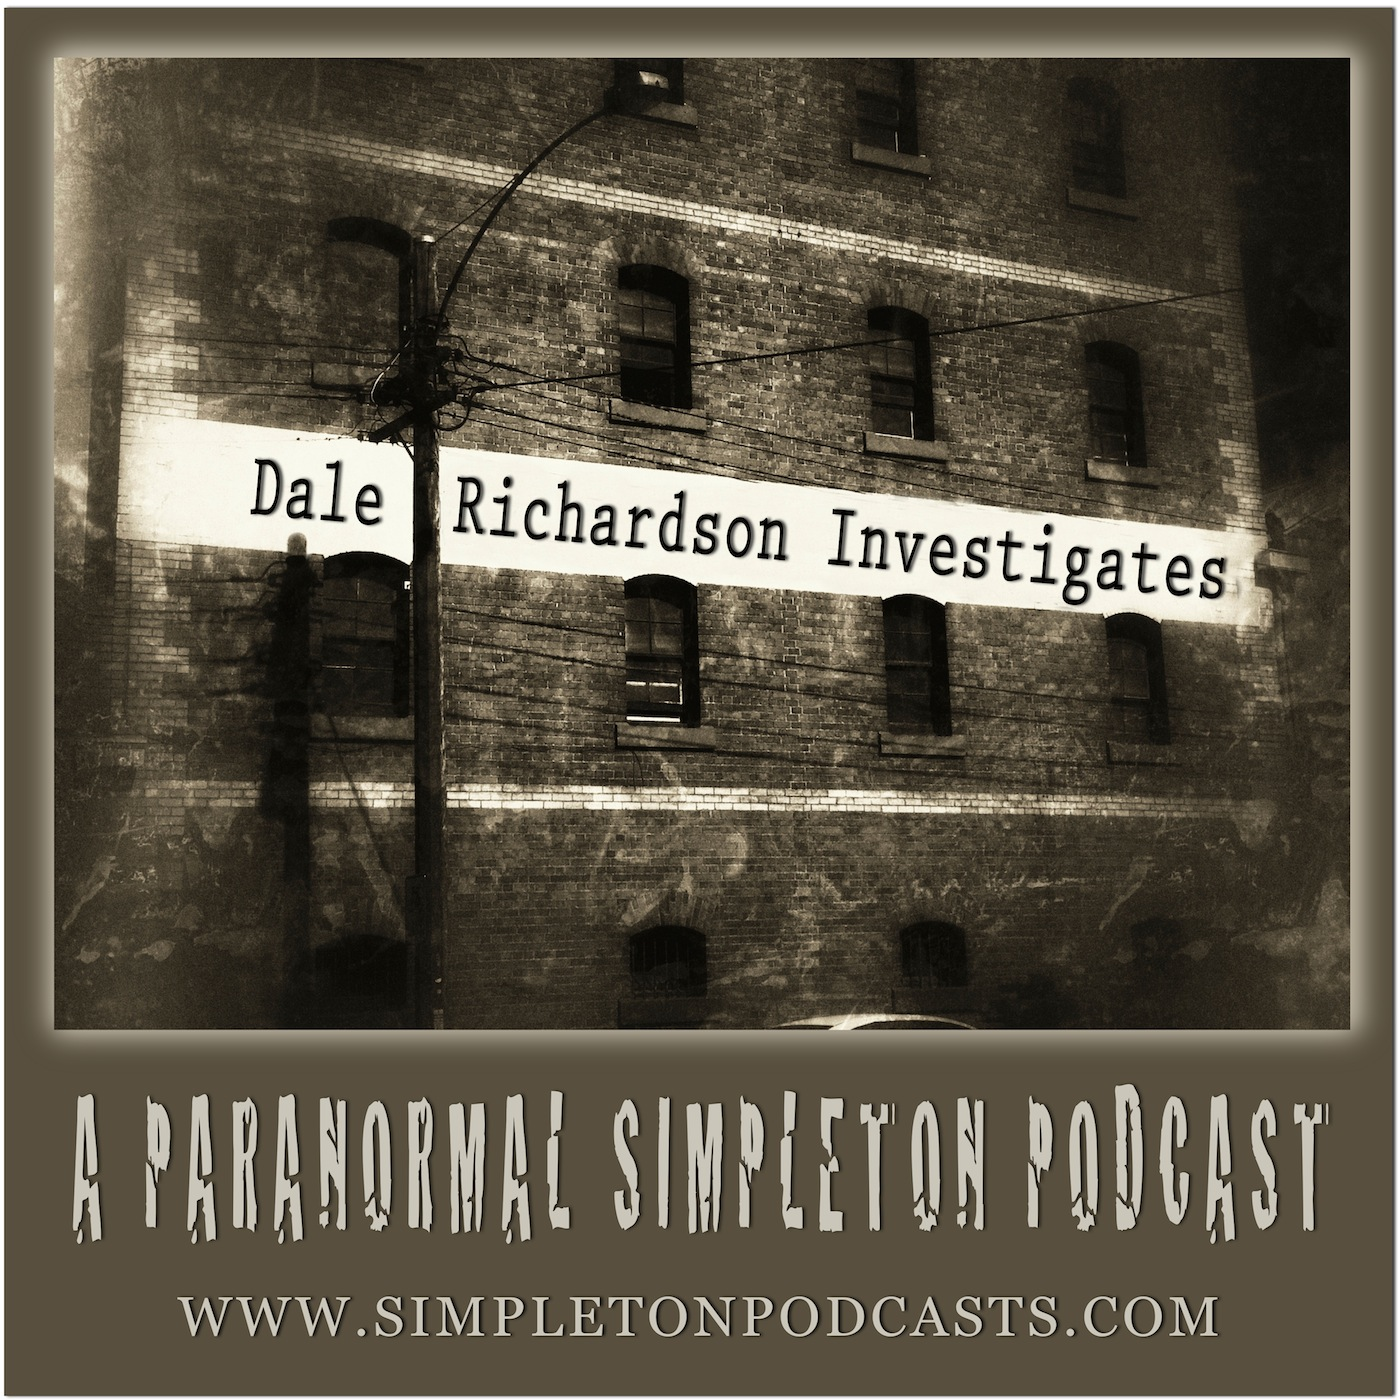 Dale Richardson Investigates - Simpleton Podcasts